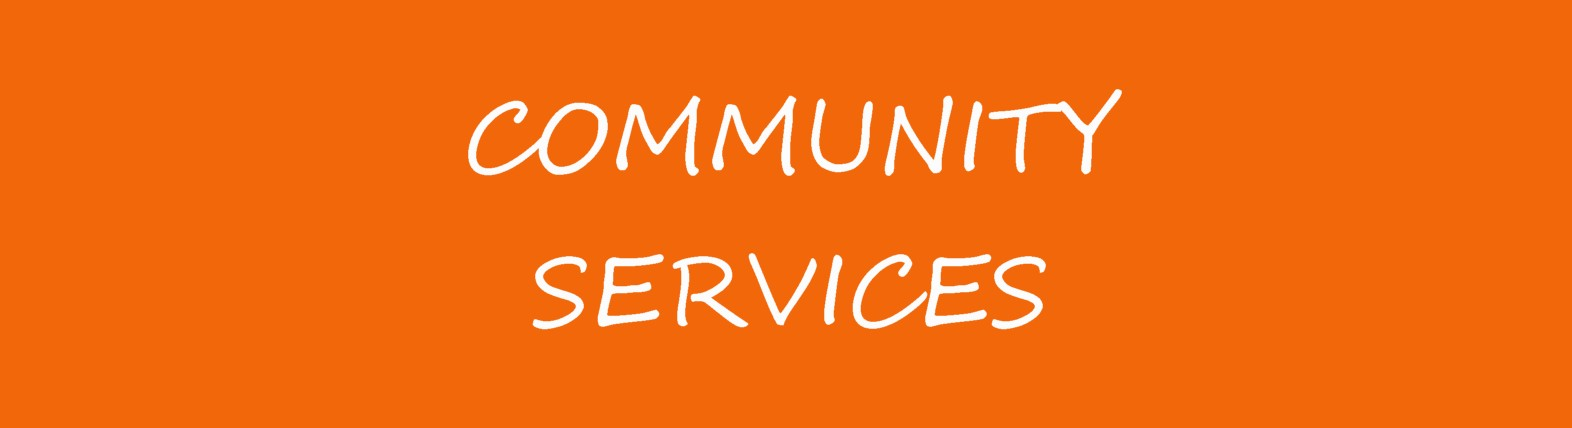 Community Services, Westchester County, NY